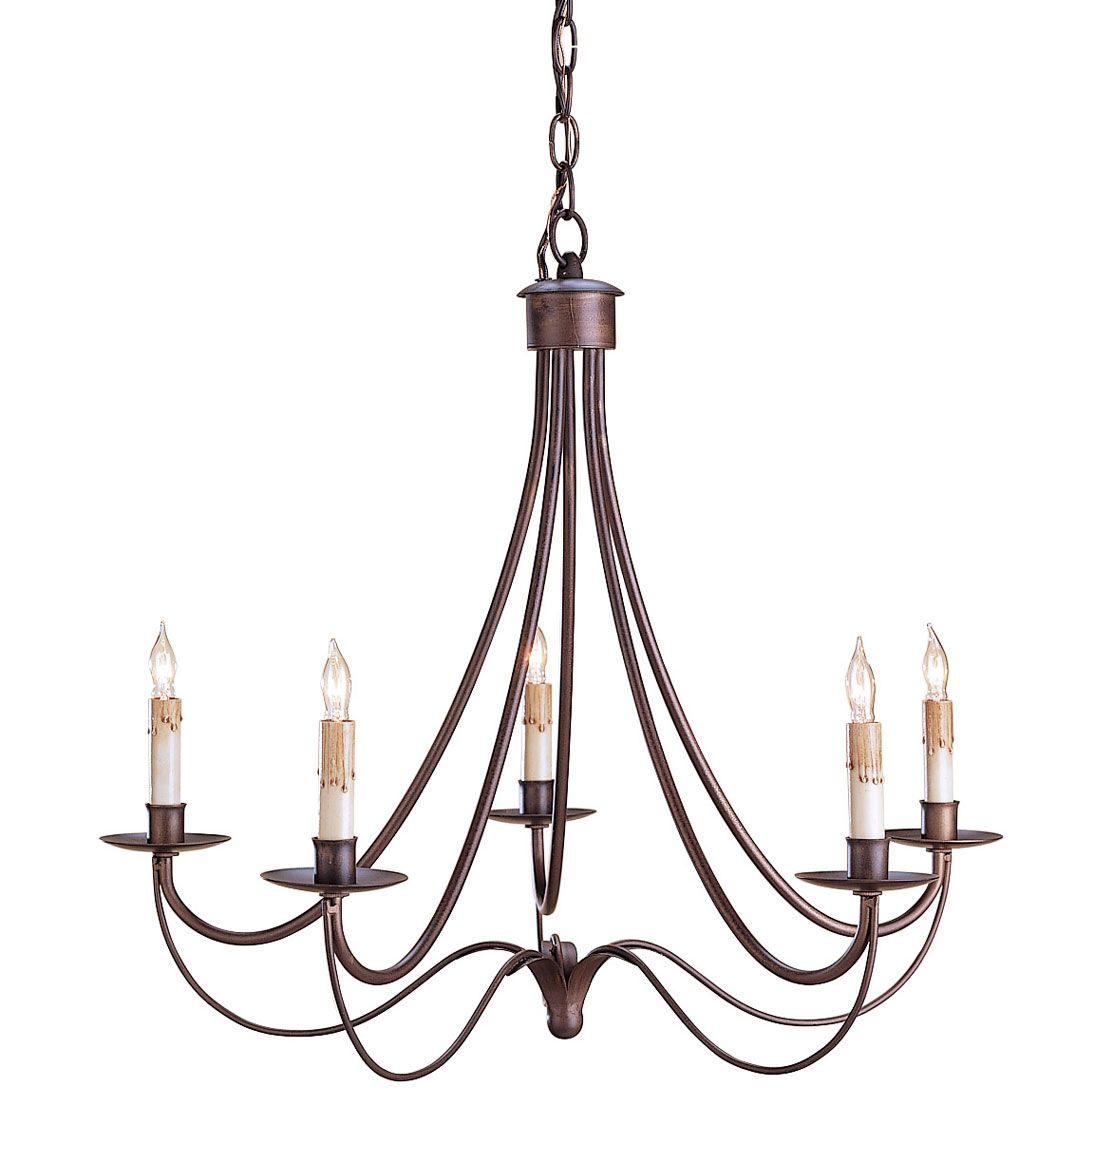 Cottage Home Lighting Chandelier Ceiling Lights Wrought Iron Chandeliers Simple Chandelier